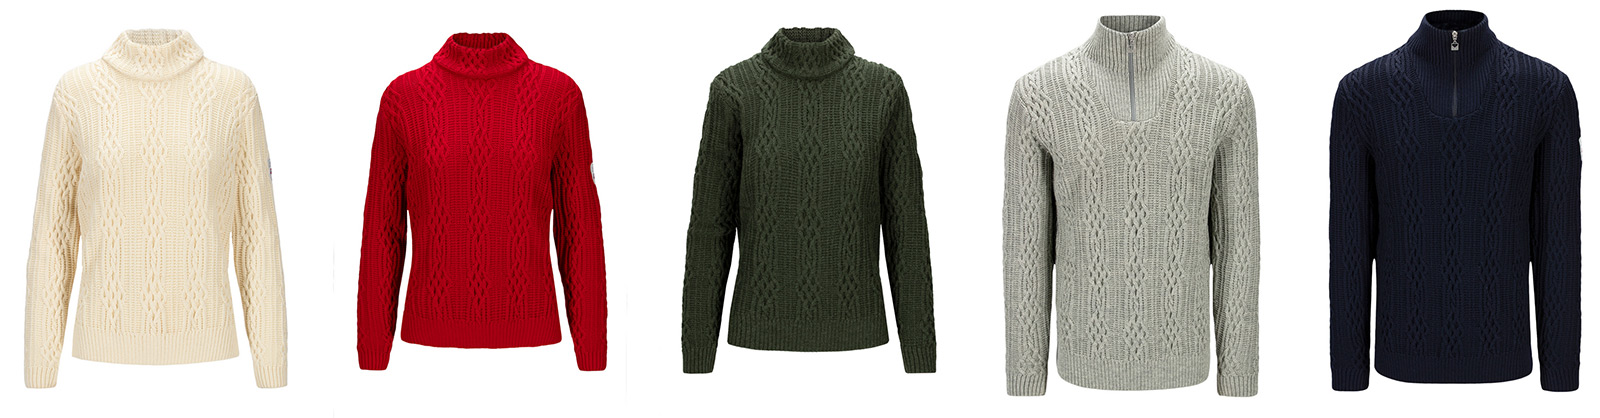 Dale of Norway Sweater – Hoven